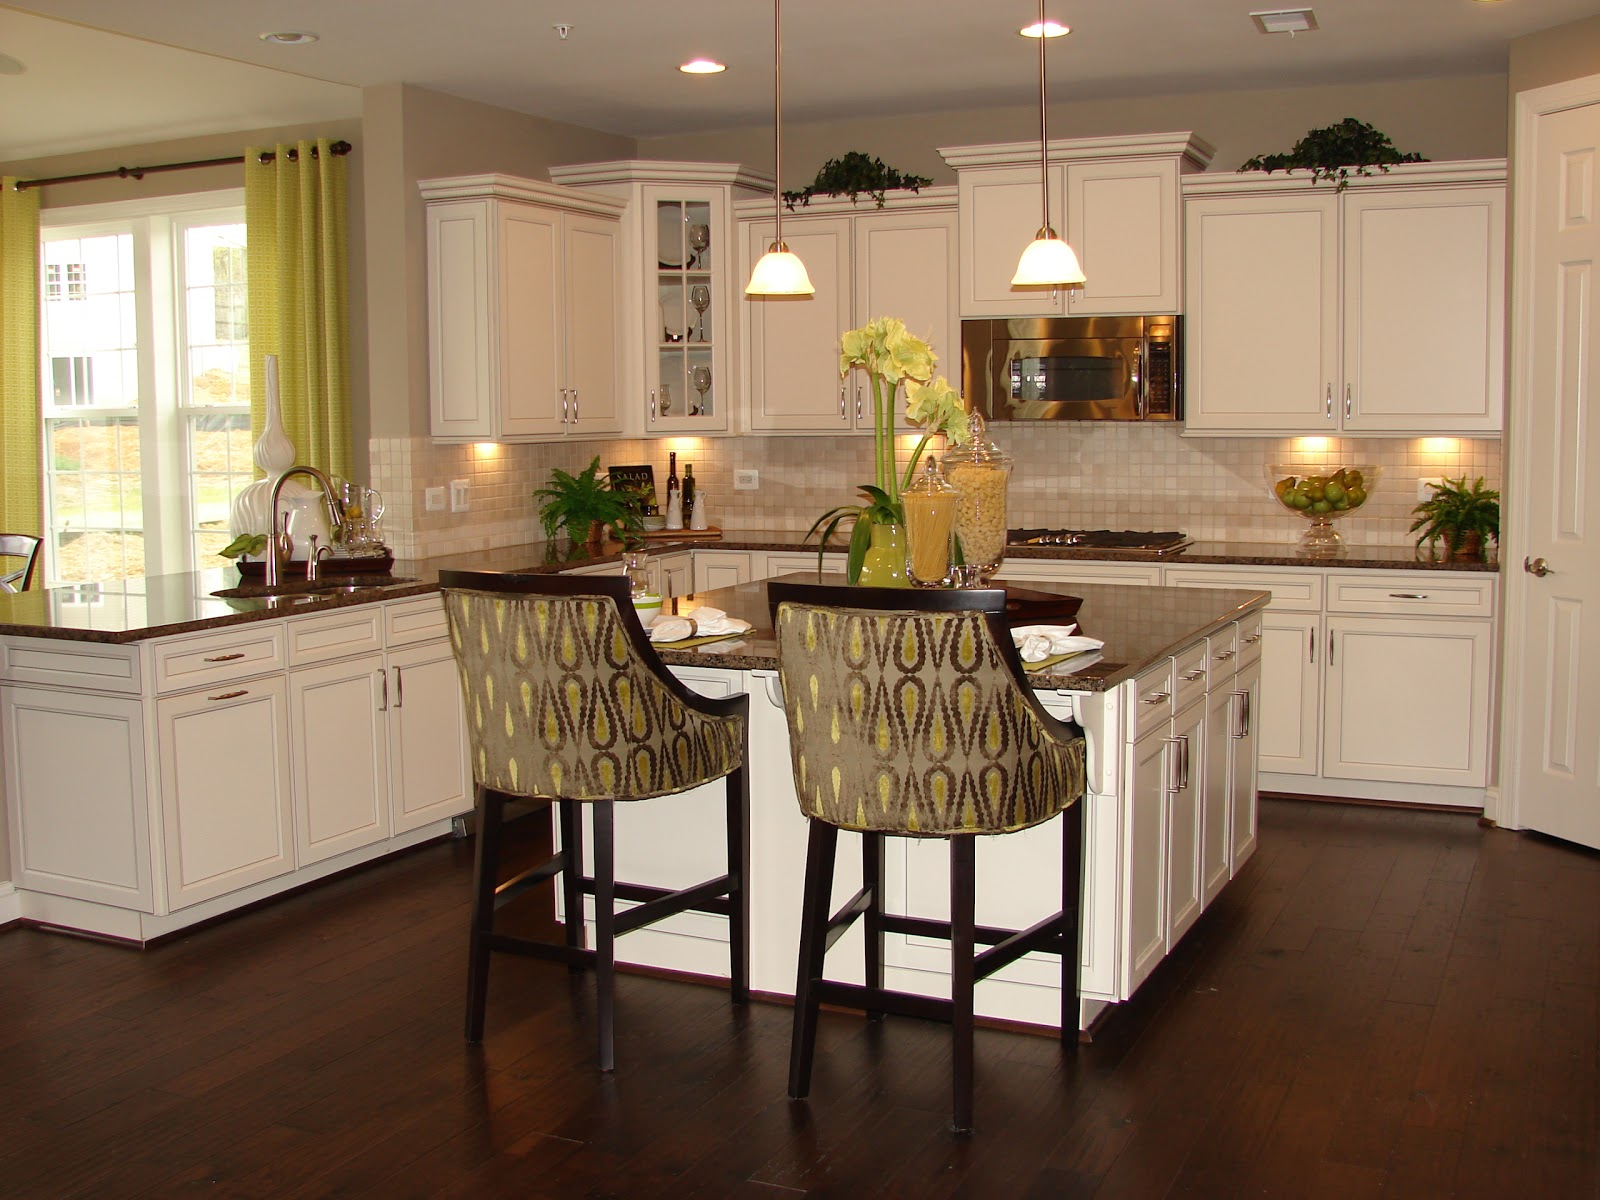 Model Style Kitchen Red And Wite : this is my dream kitchen but it is a richmond homes kitchen i fell in ...